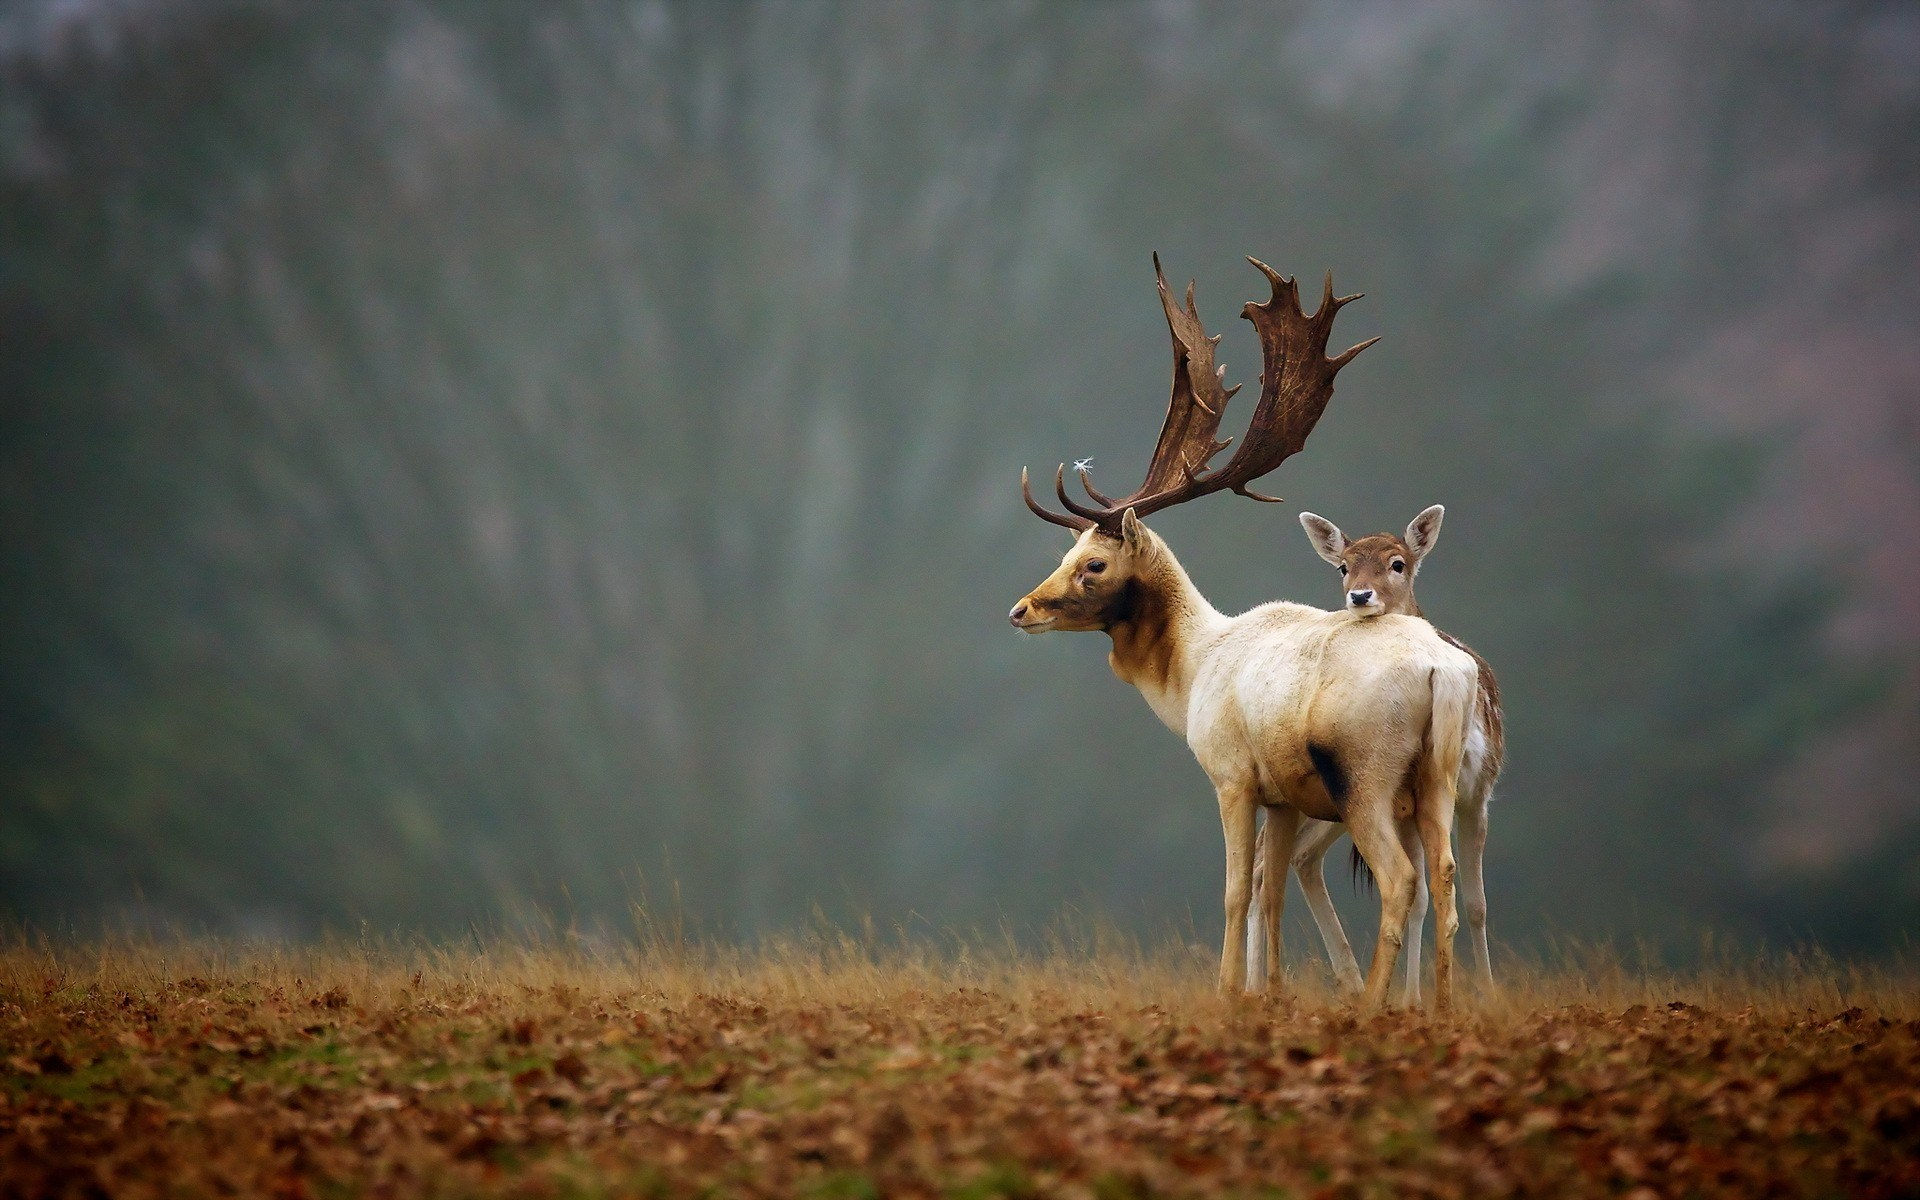 deer-animals-nature-hd-wallpaper - Magic4Walls com